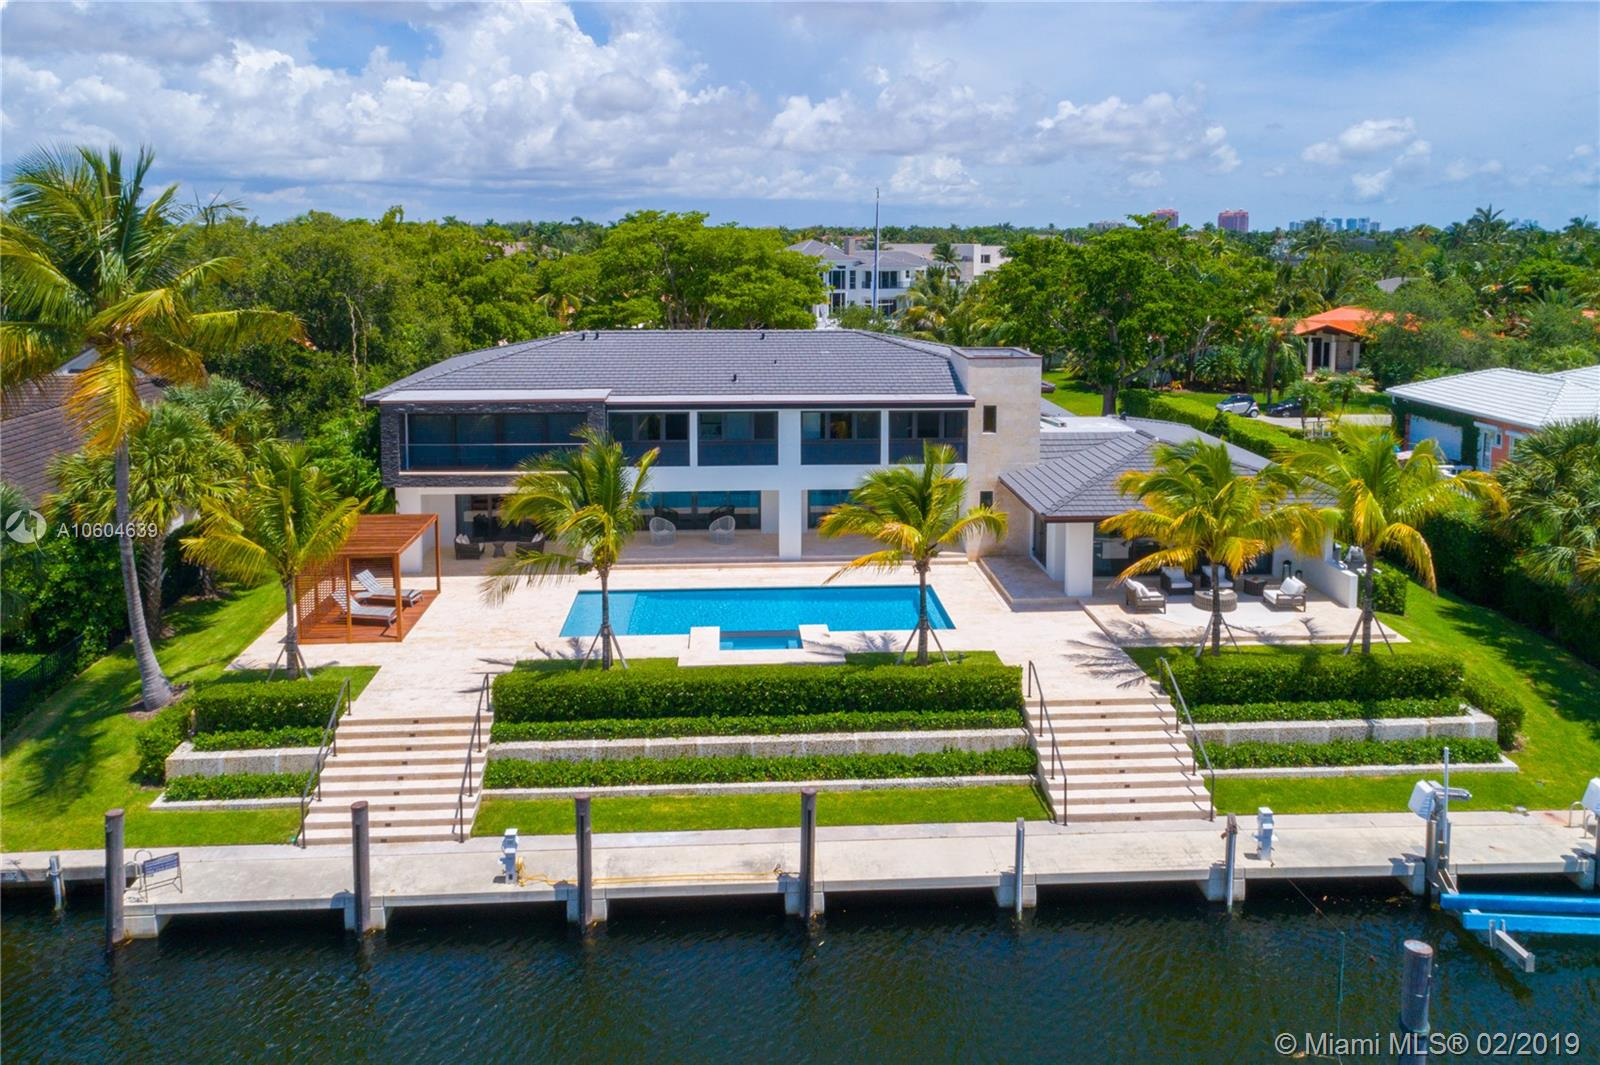 Spectacular Waterfront Home In Guard Gated Old Cutler Bay. Completely Remodeled Home Has Mia Cucina Kitchen, Wolf Appliances, Speakers In/Out, Impressive Glass Encased Wine Cellar W/ Cooler & Bar For Ultimate Home Entertaining. Master Suite W/Balcony & 4 Bedrooms With Walking Closets And A Studying Area On 2Nd Flr, Maid+Ógé¼Gäós Qtrs. On 1St Flr. Off Laundry Room. Spacious Open & Flexible Floor Plan W/2 Family Rooms, Living Room And Dining Room. Pool/Spa W/Tanning Deck Overlooks Wide Canal With No Bridges To Bay! Dock W/Lift And 140Ft Of Waterfrontage.